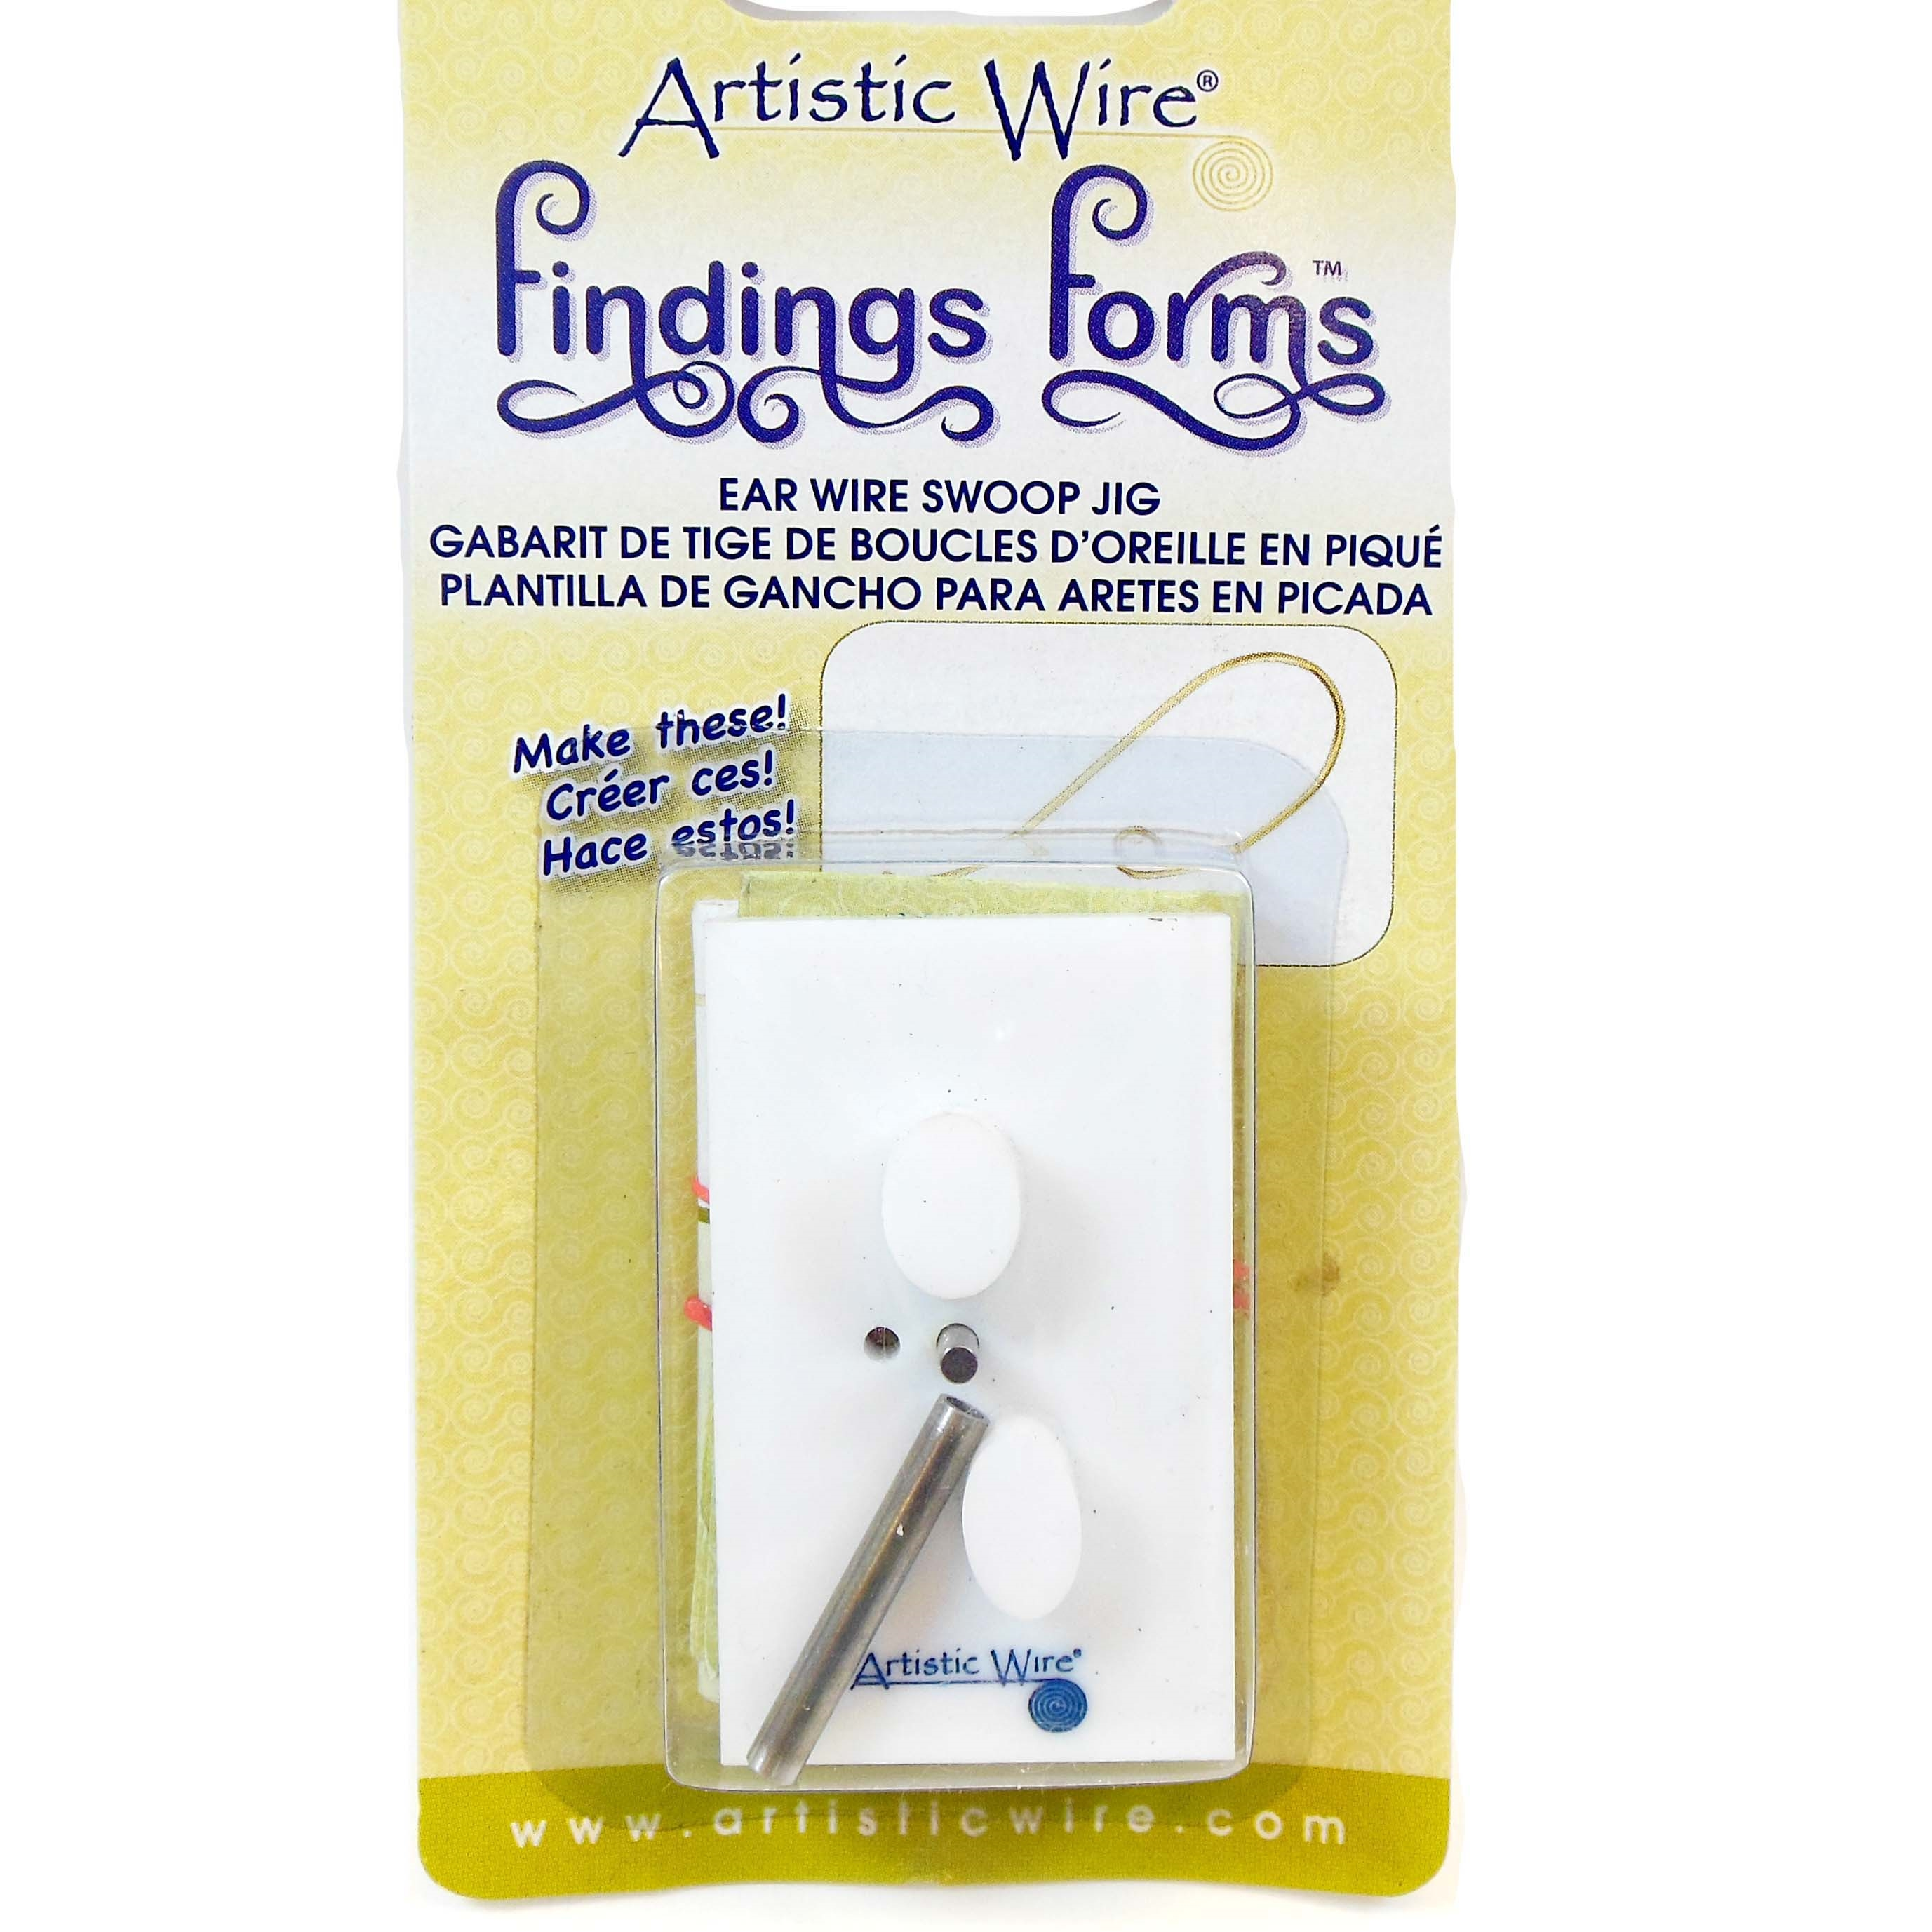 ear wire jig, wire bender, 20-22 gauge, jewelry making supplies, jewelry tools, earring tools, 03673